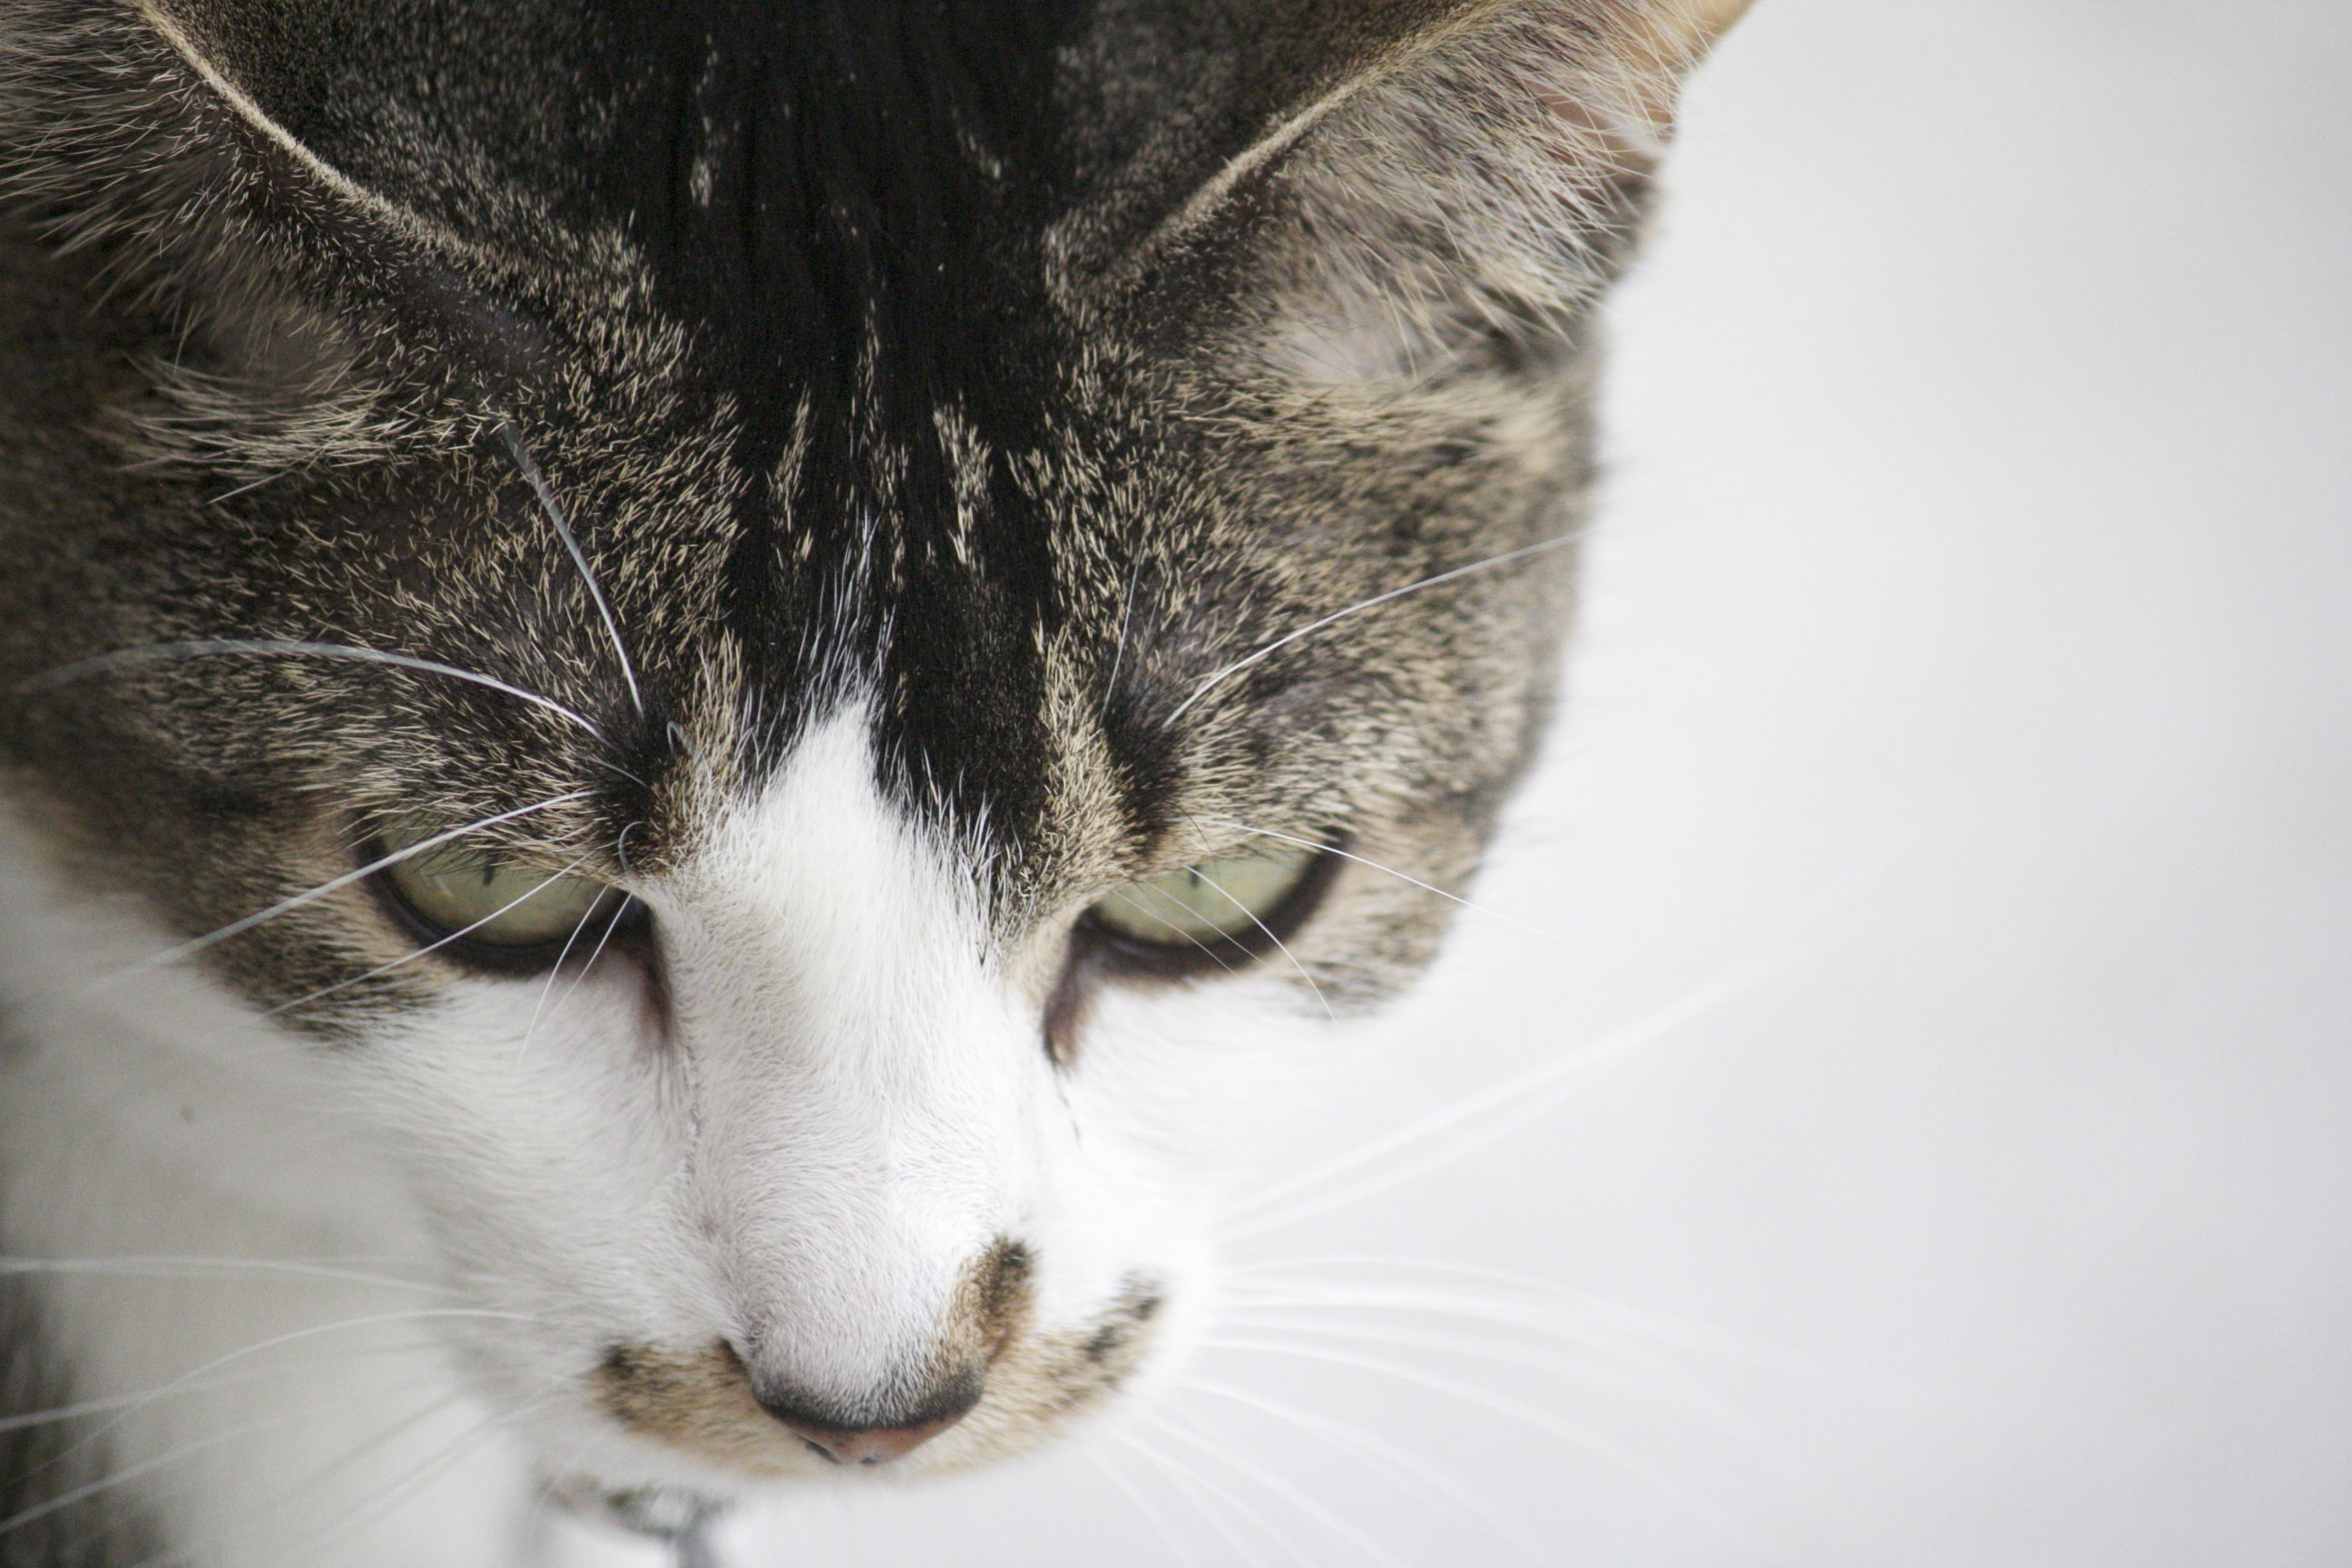 Close up of gray and white domestic cat on light background